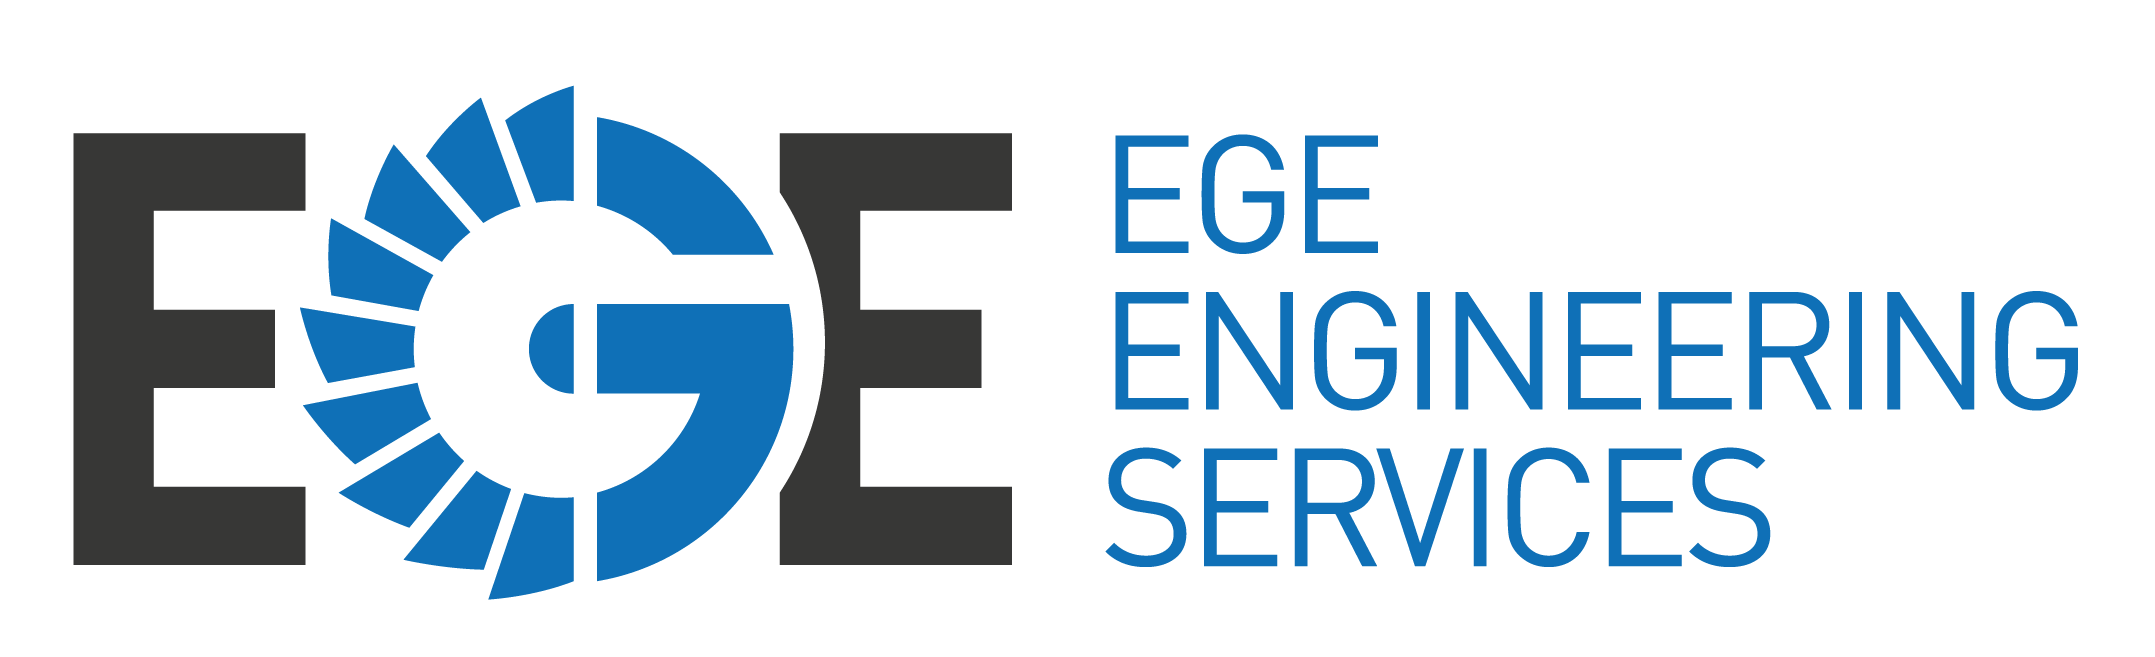 Ege Engineering Services